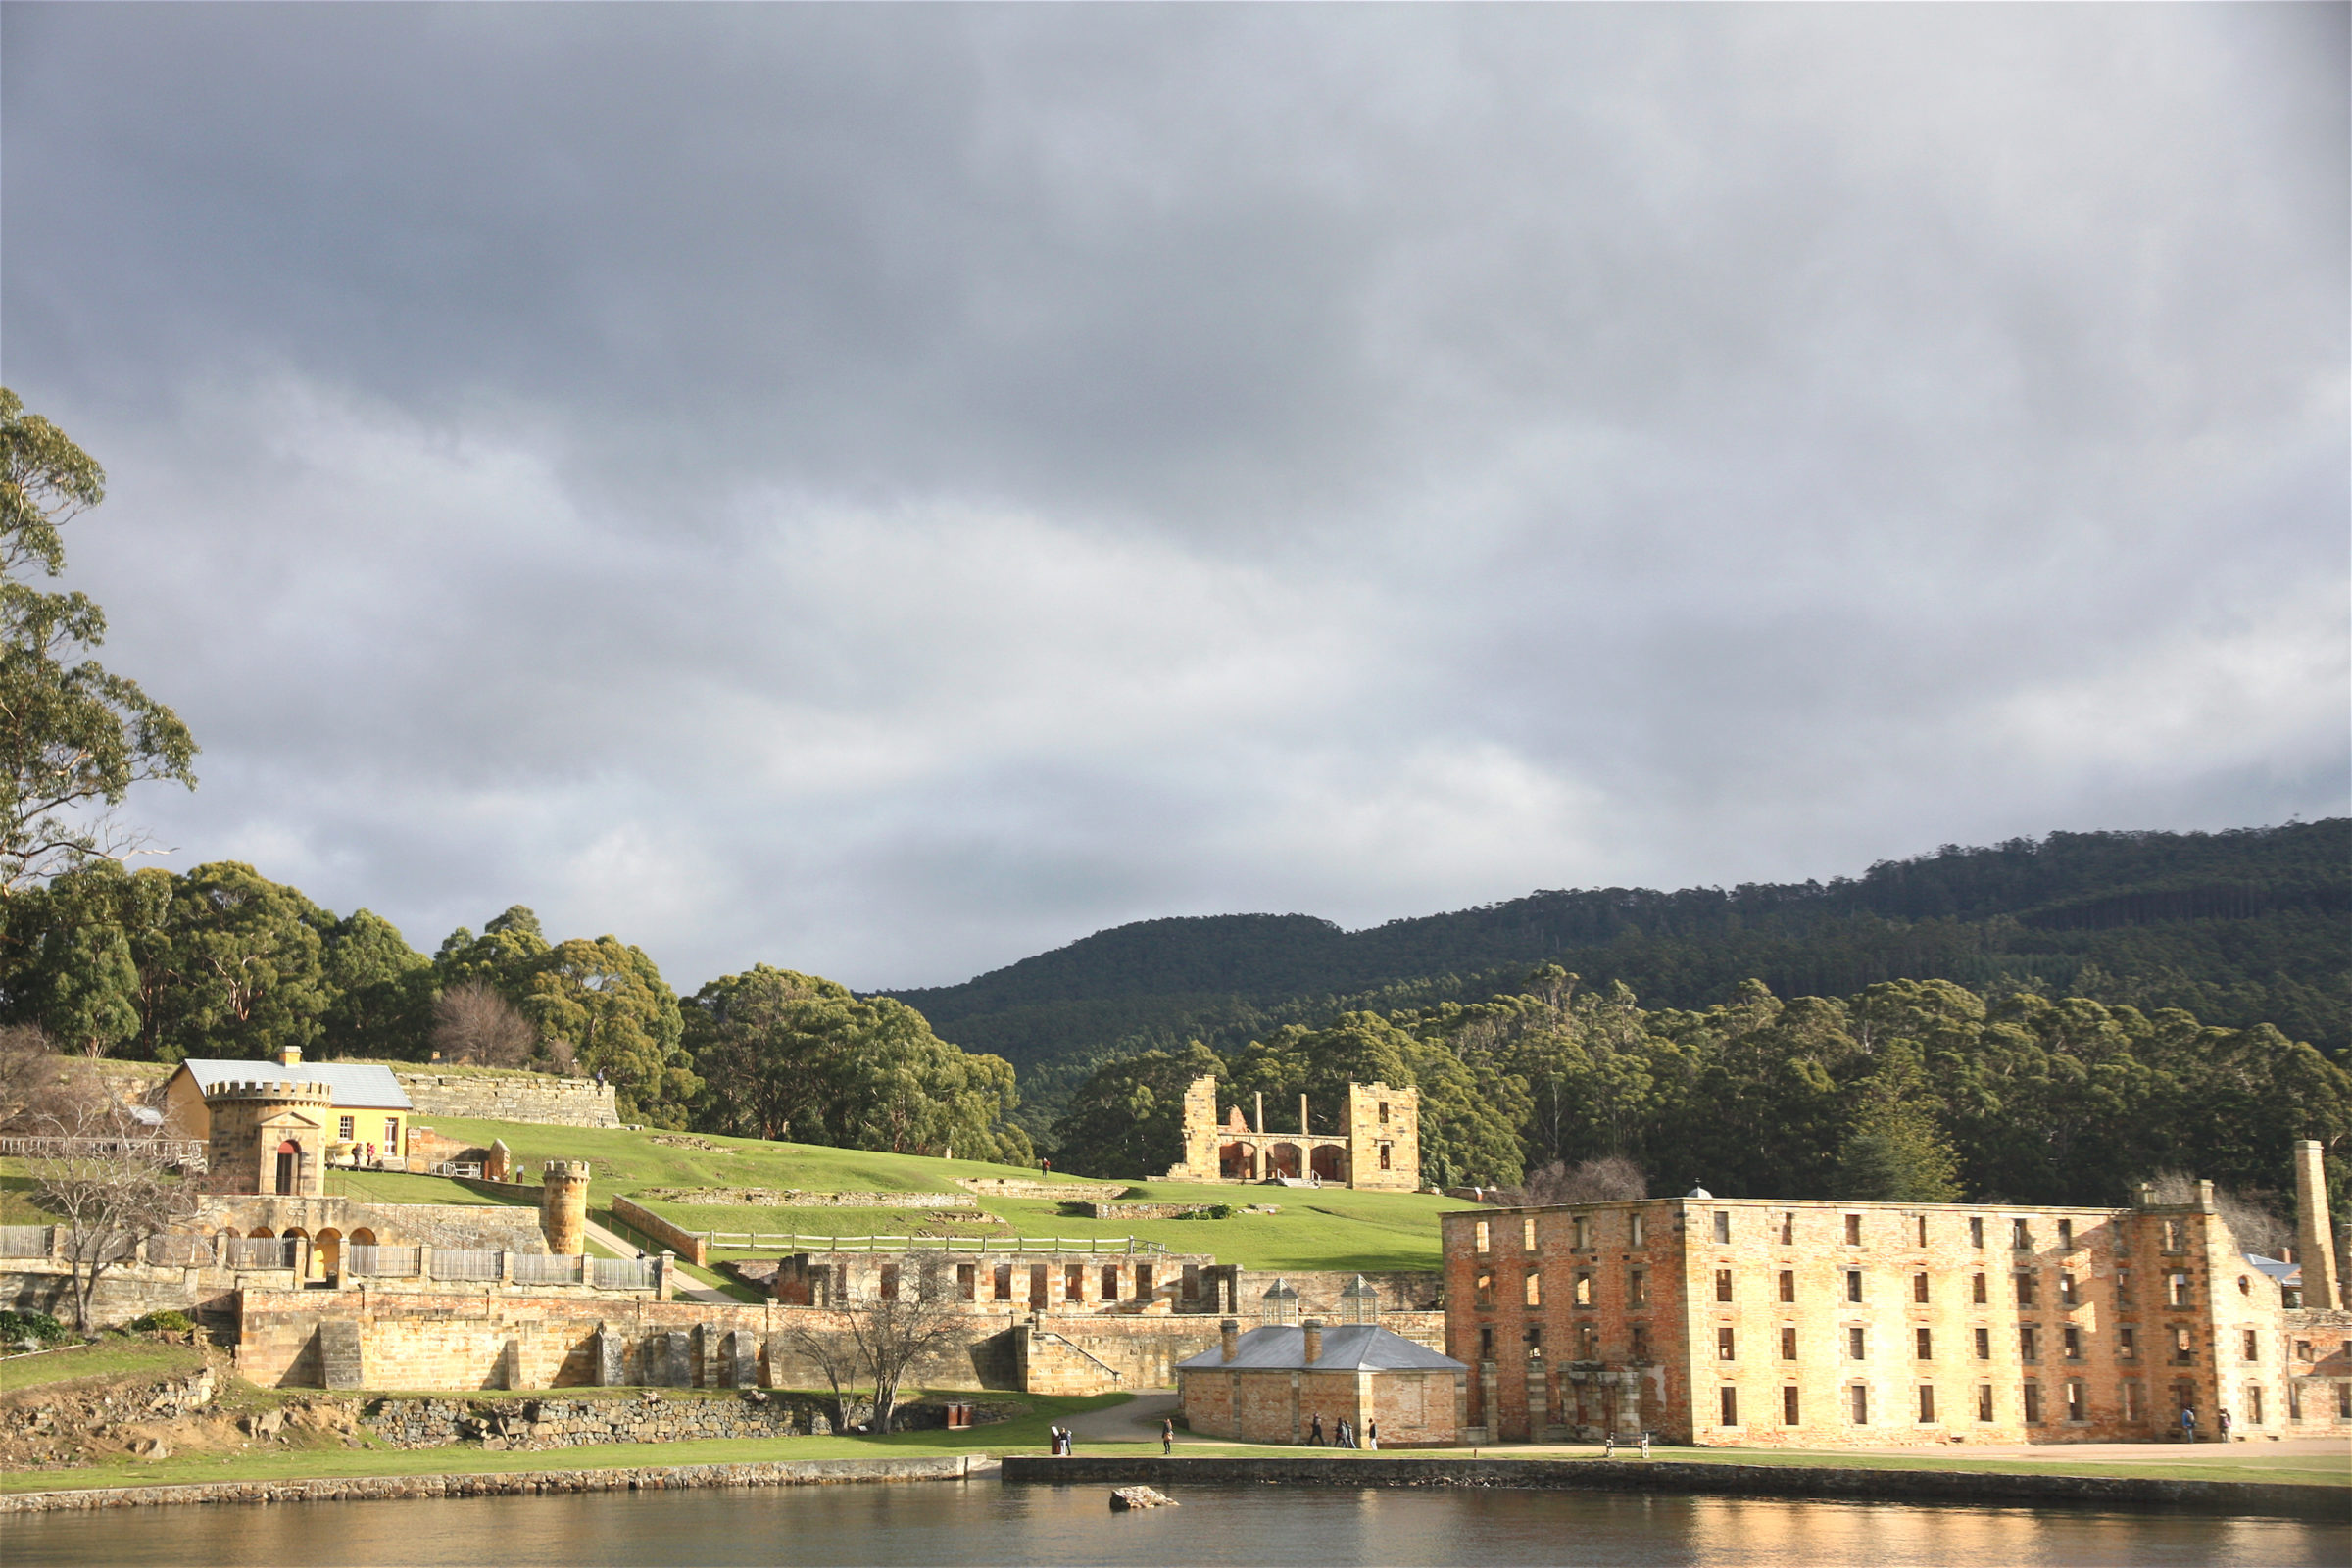 Tasmania Road Trip Itinerary, Day 3: Port Arthur